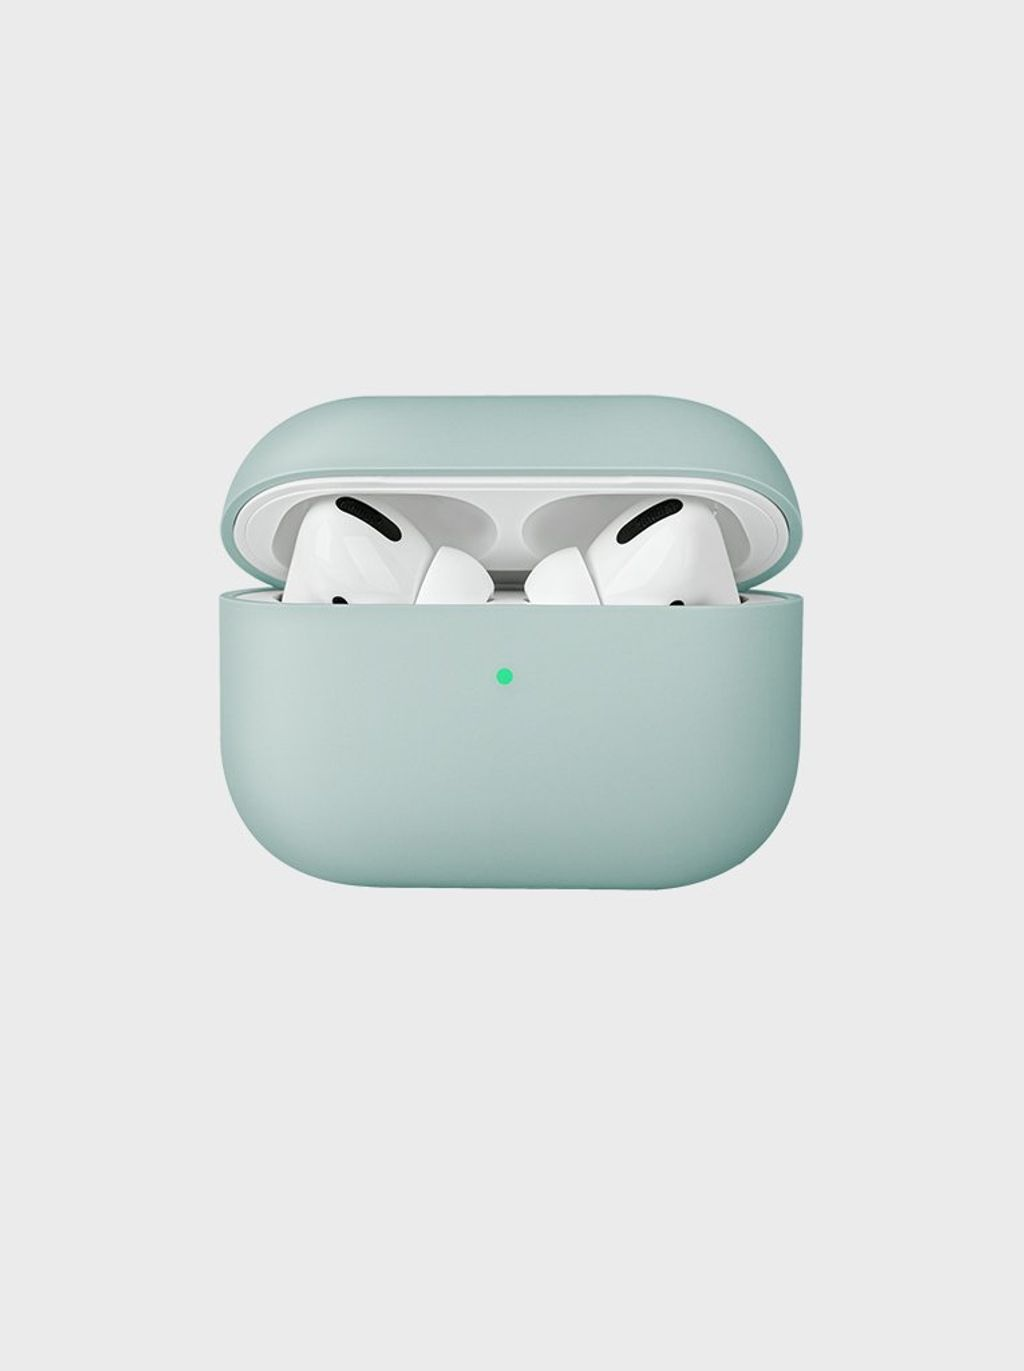 Lino_AirPods-Mint-01_Low_res_SG_1024x1024